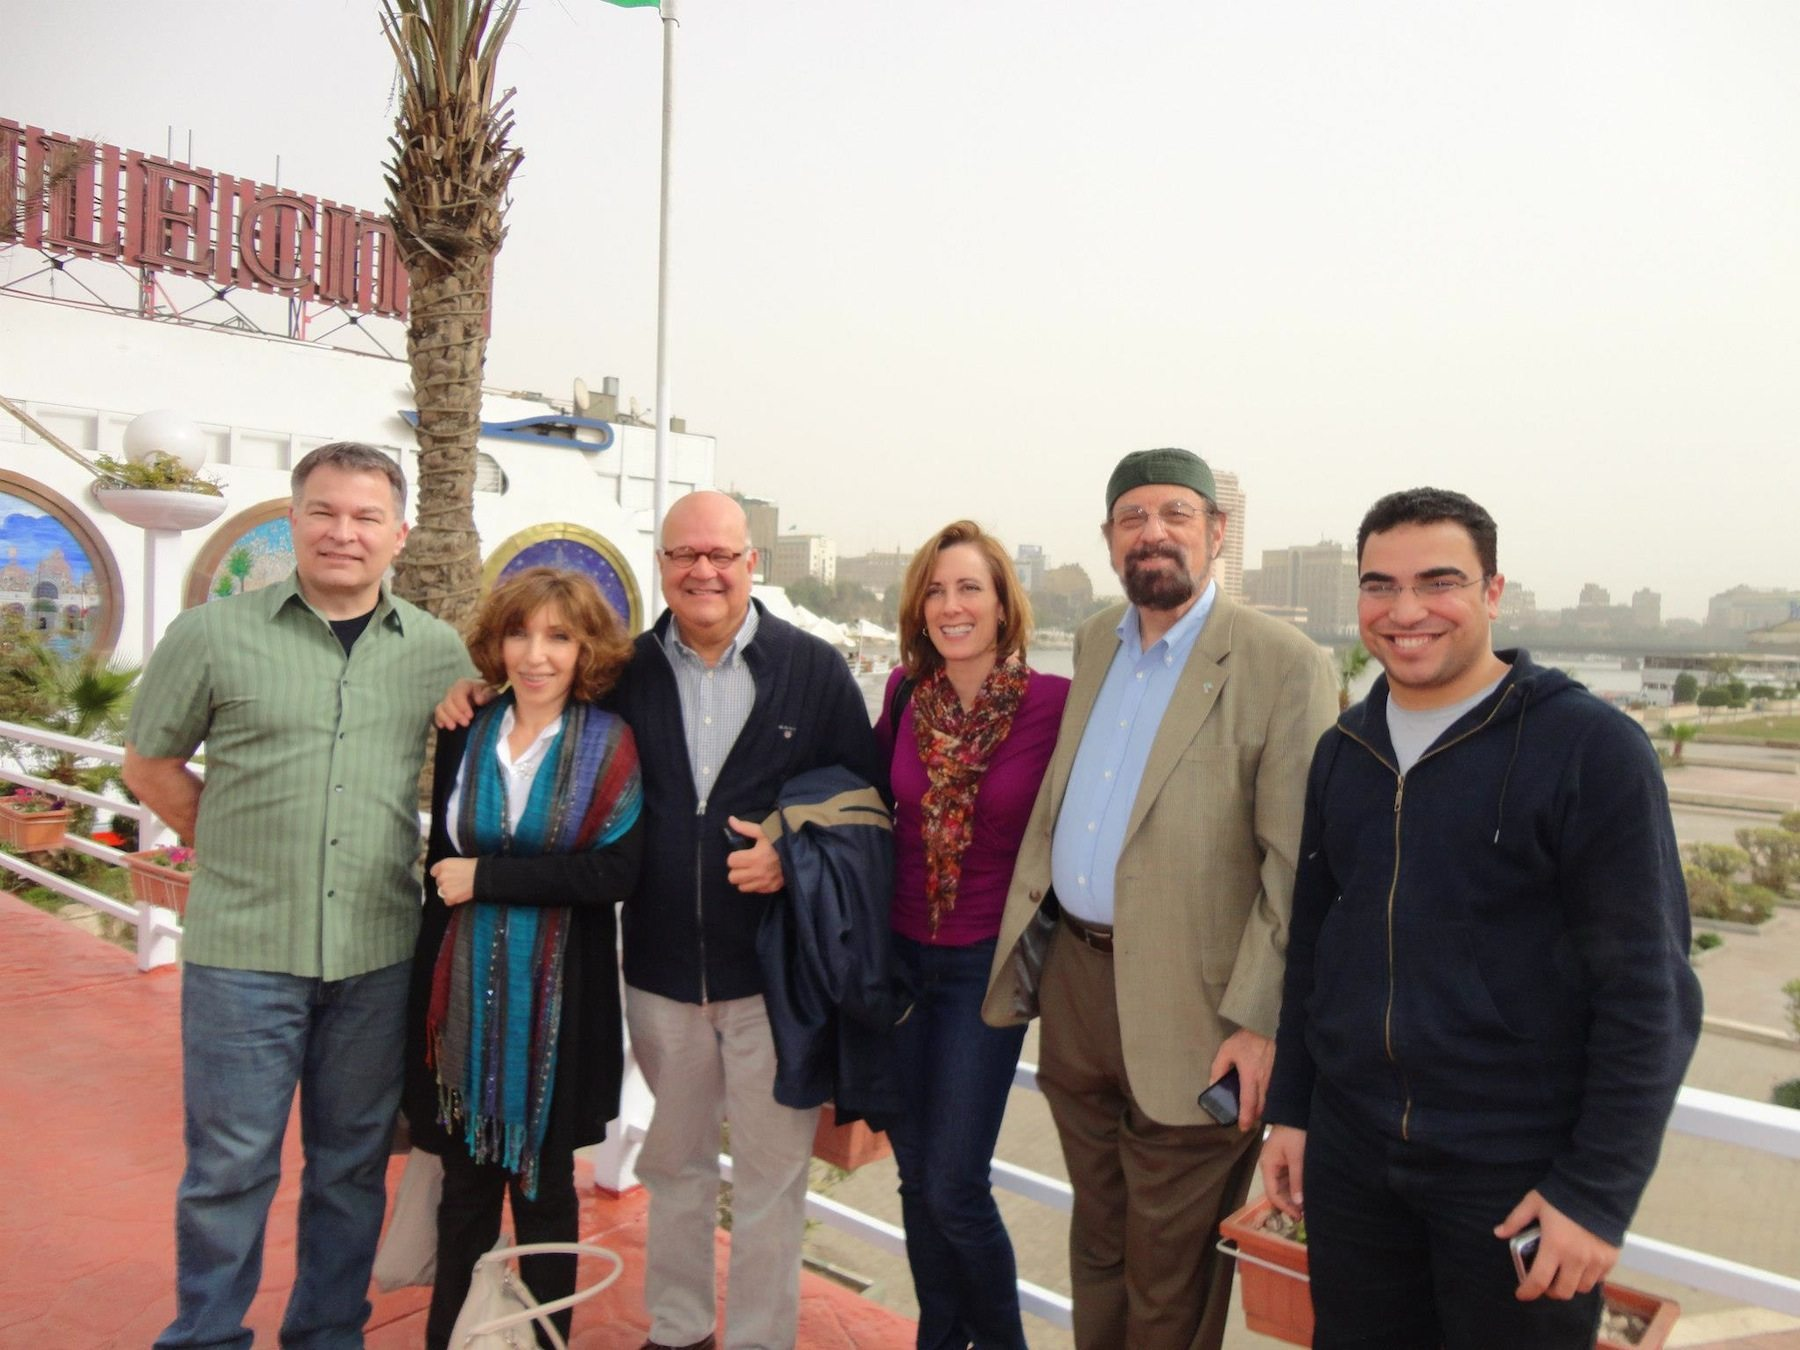 Mr. Rash, Mitra Nafissian-Rash and other public health delegates in Cairo